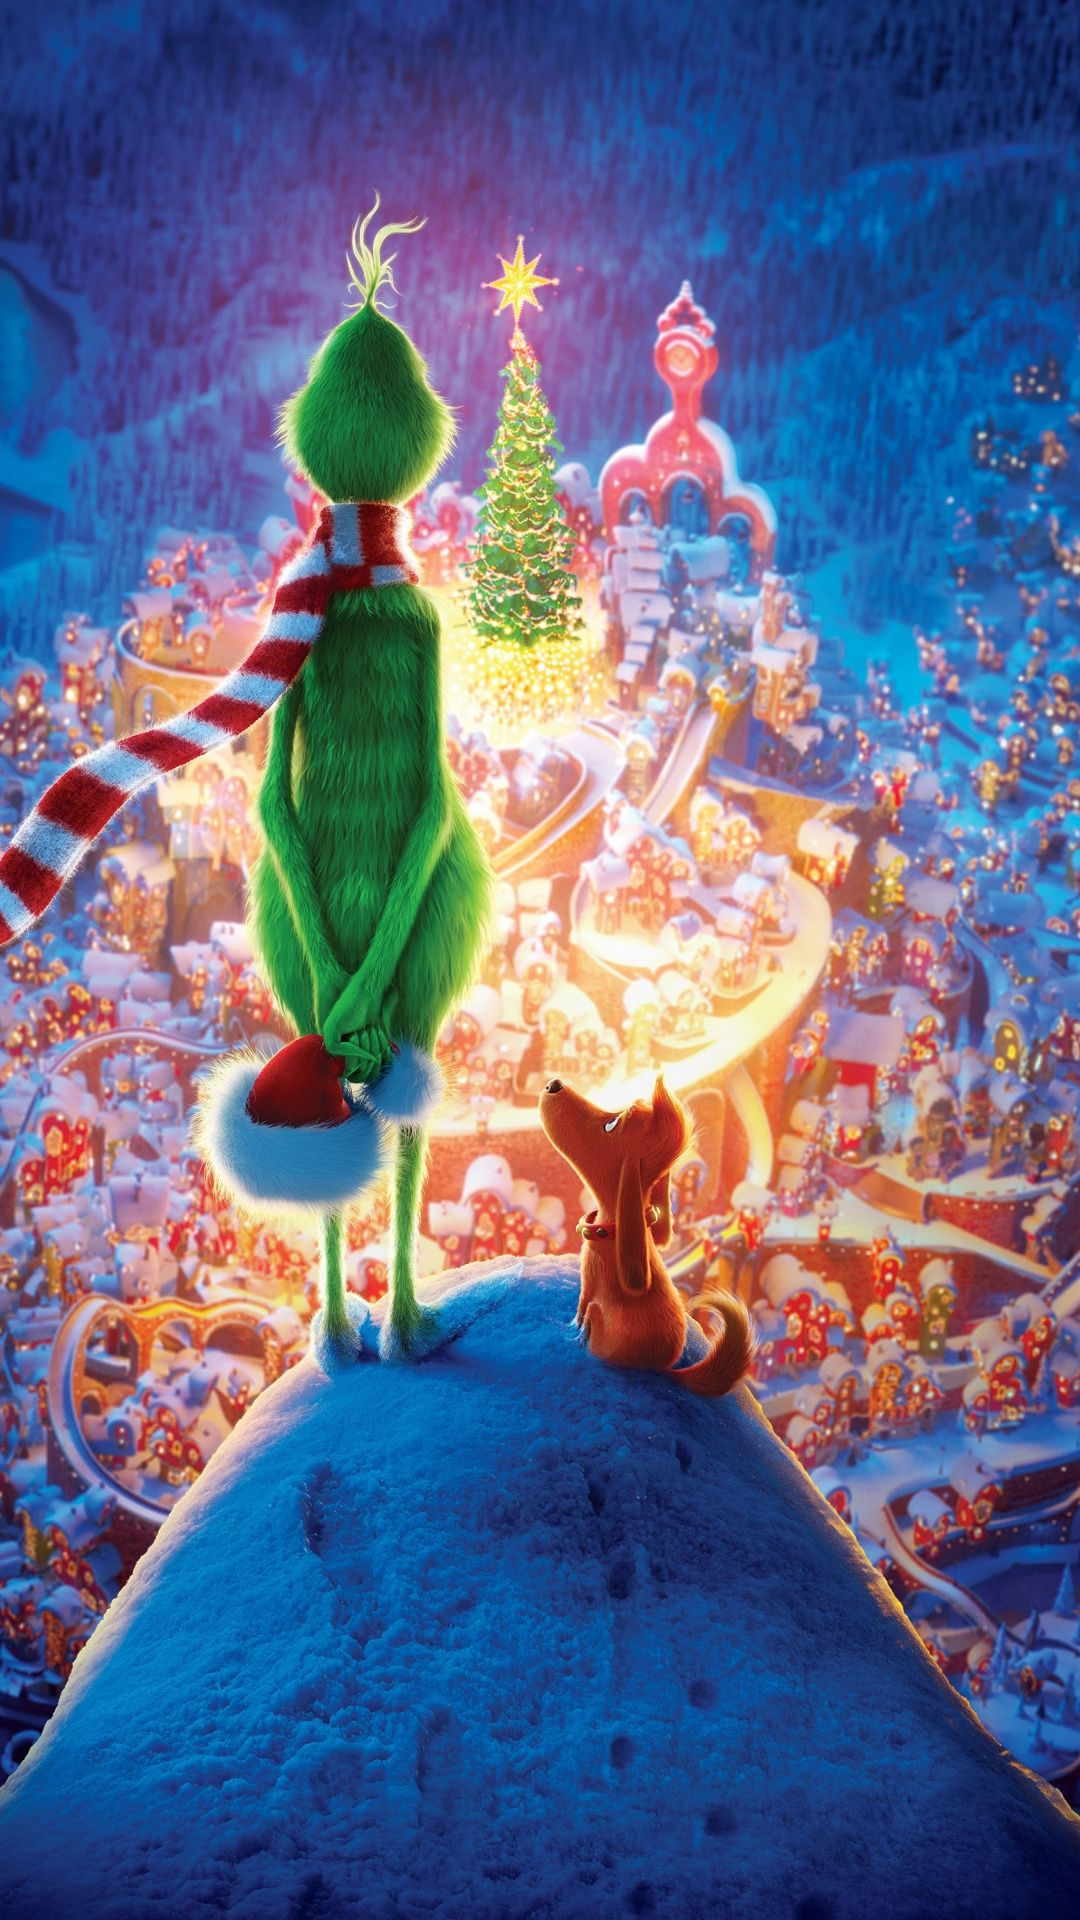 Holiday Movie Hd Wallpaper The Grinch 2018 Movie Christmas 1080x1920 Wallpaper